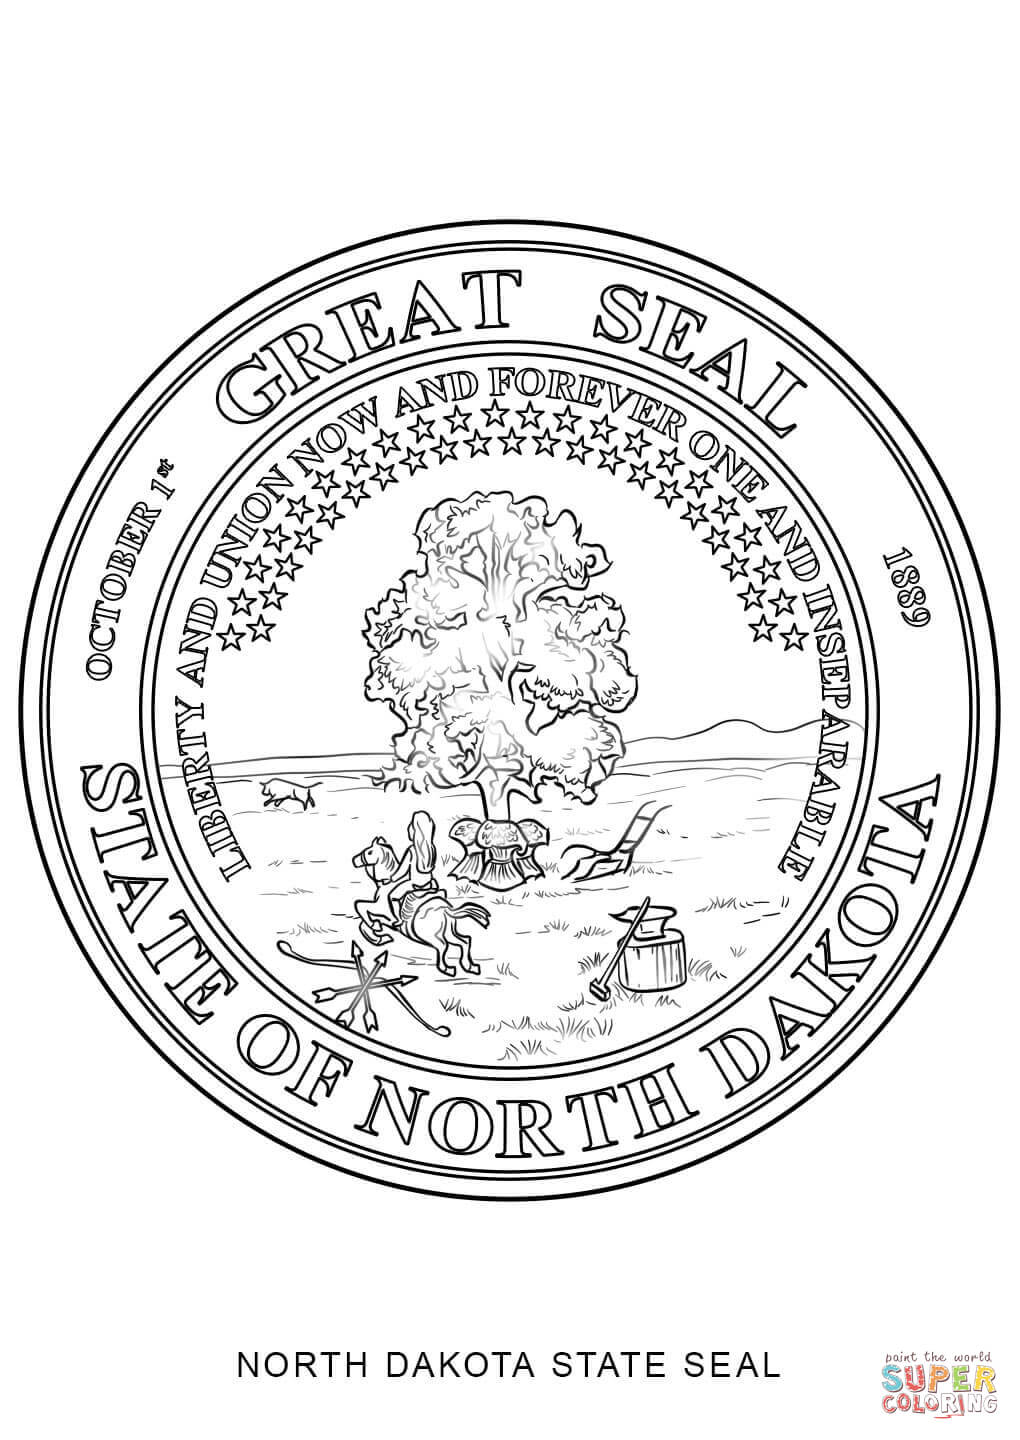 new jersey state seal coloring page awesome north dakota state seal coloring page top free seal state jersey new coloring page